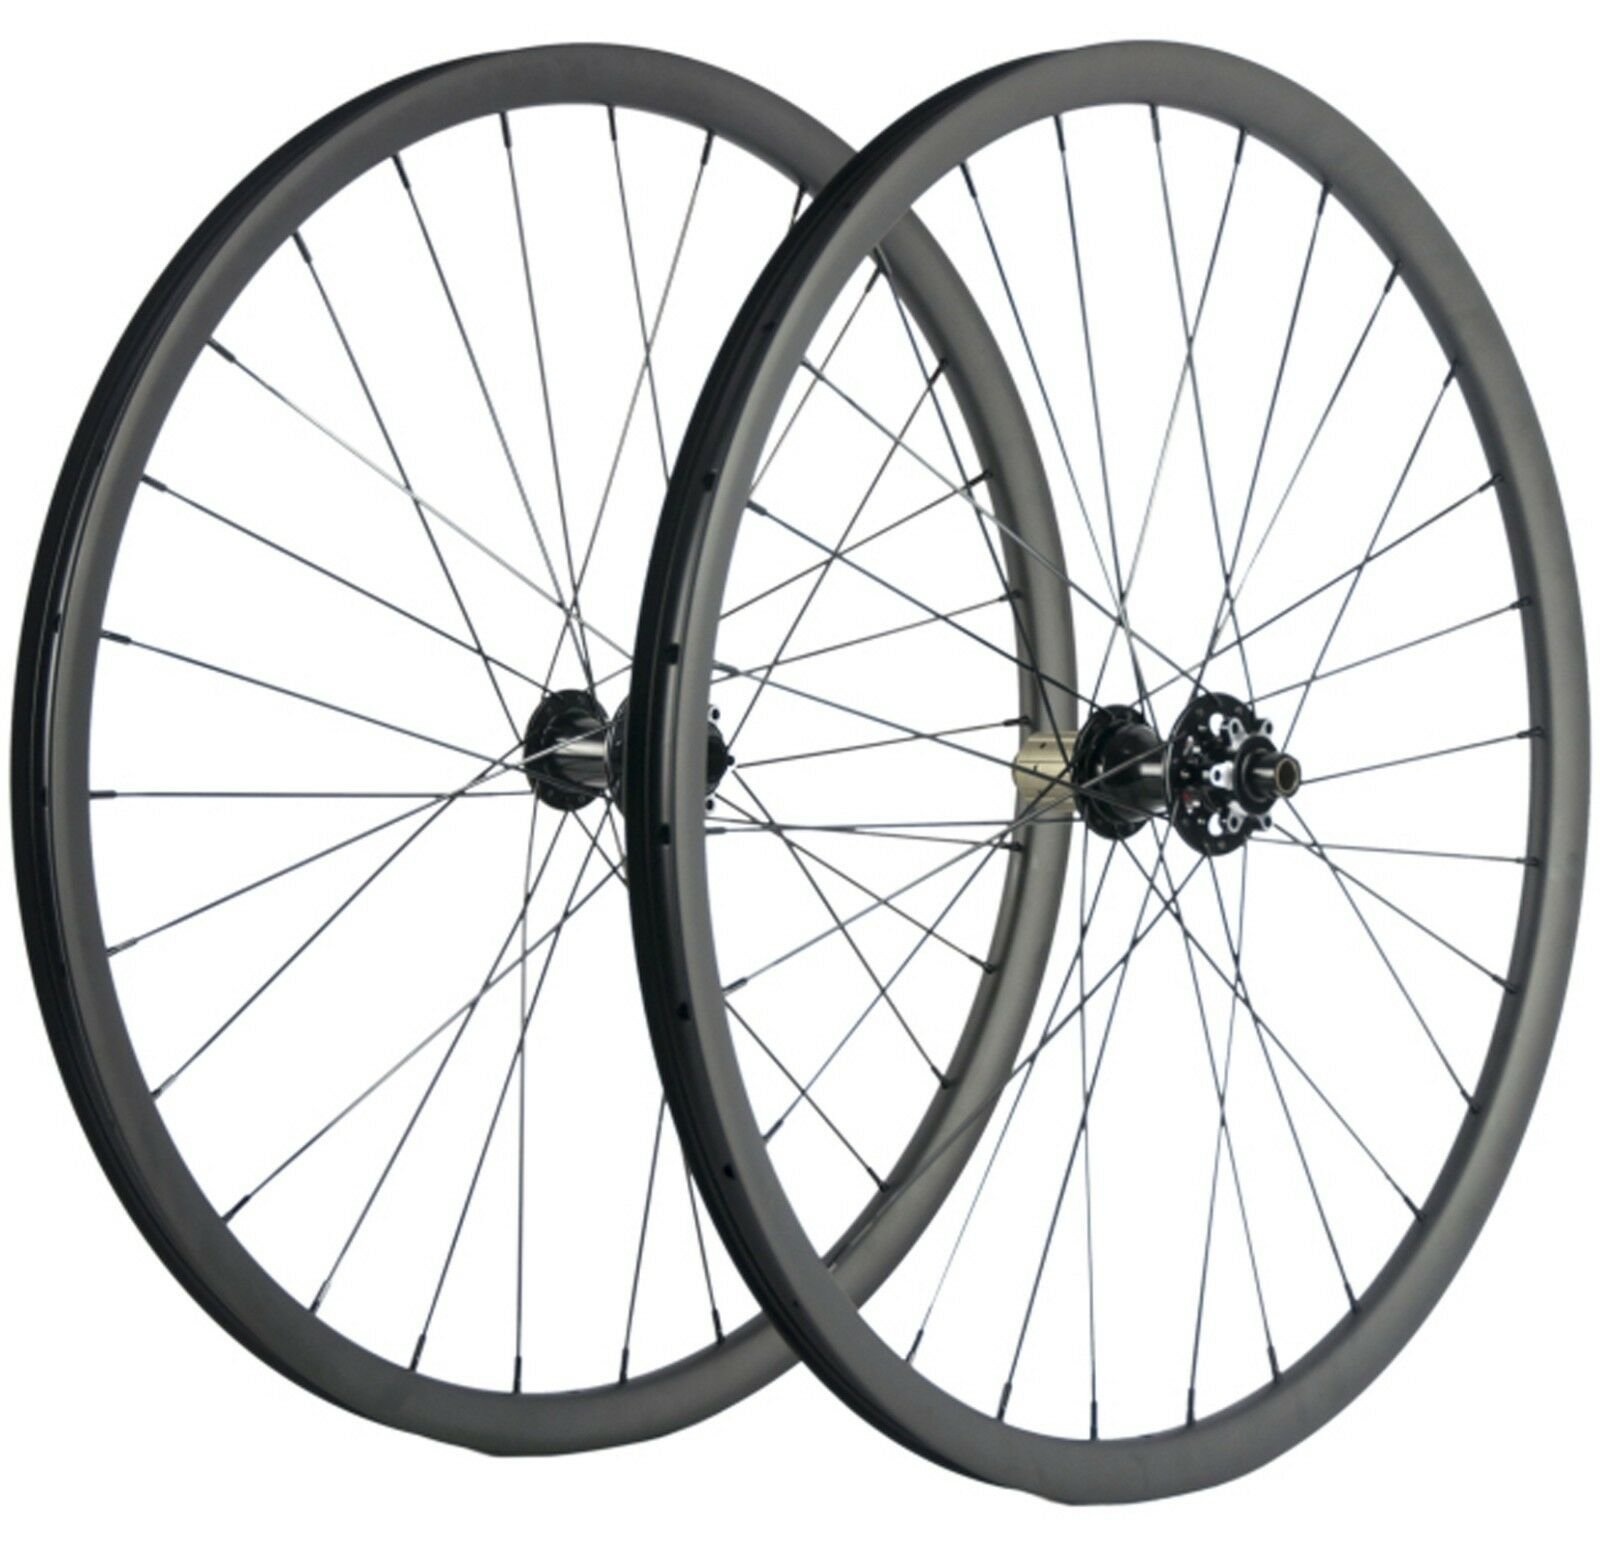 27.5ER Carbon MTB Wheelset 27mm Width Mountain Carbon Wheels Tubeless  Bike Wheel  outlet on sale